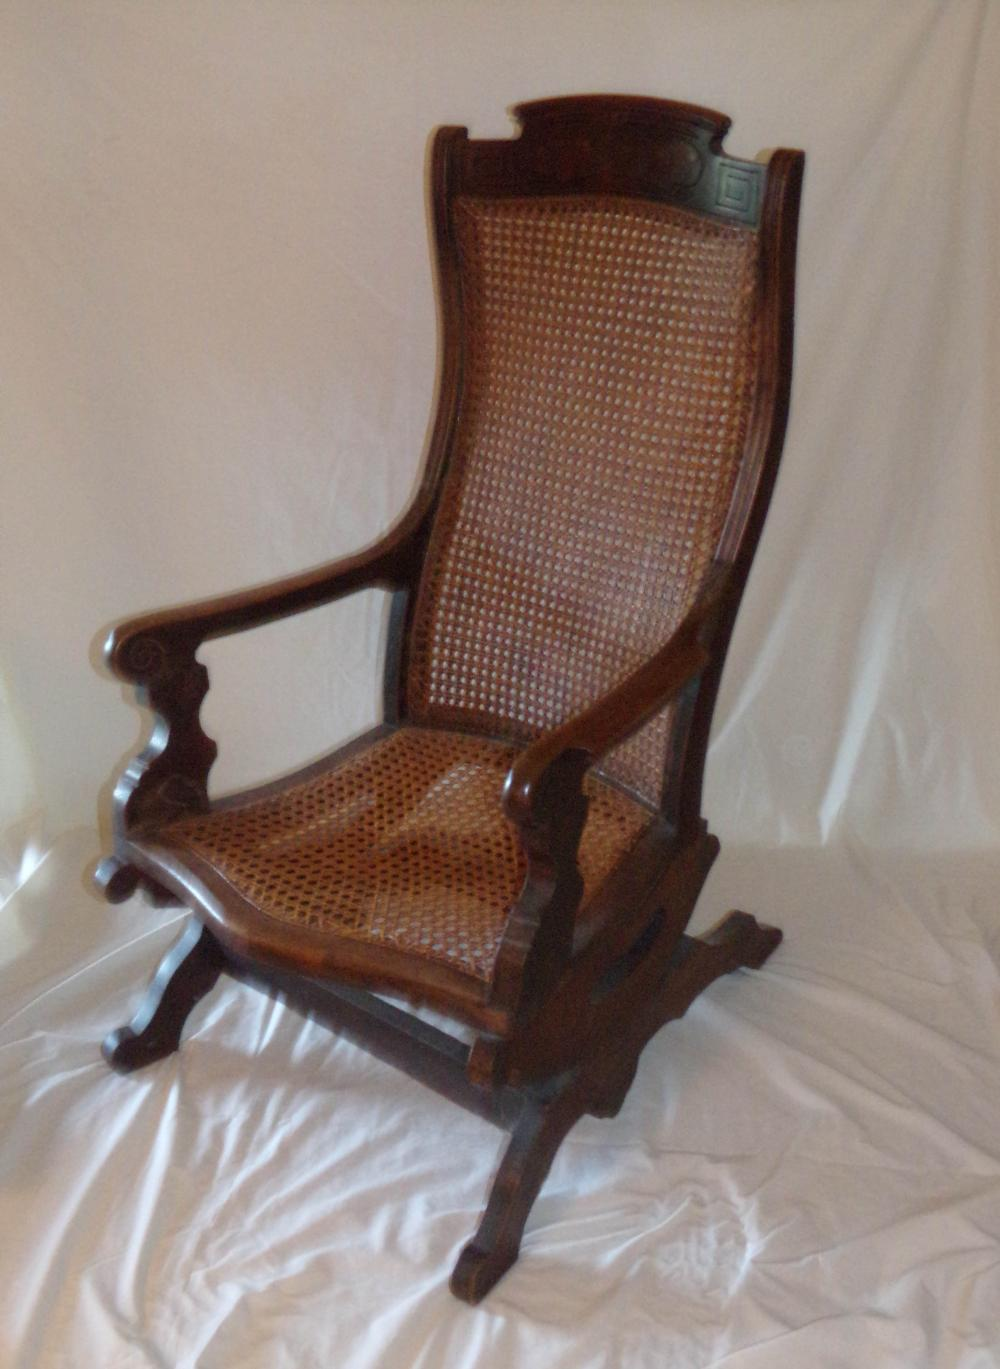 Peachy Victorian Walnut Platform Rocking Chair Gmtry Best Dining Table And Chair Ideas Images Gmtryco